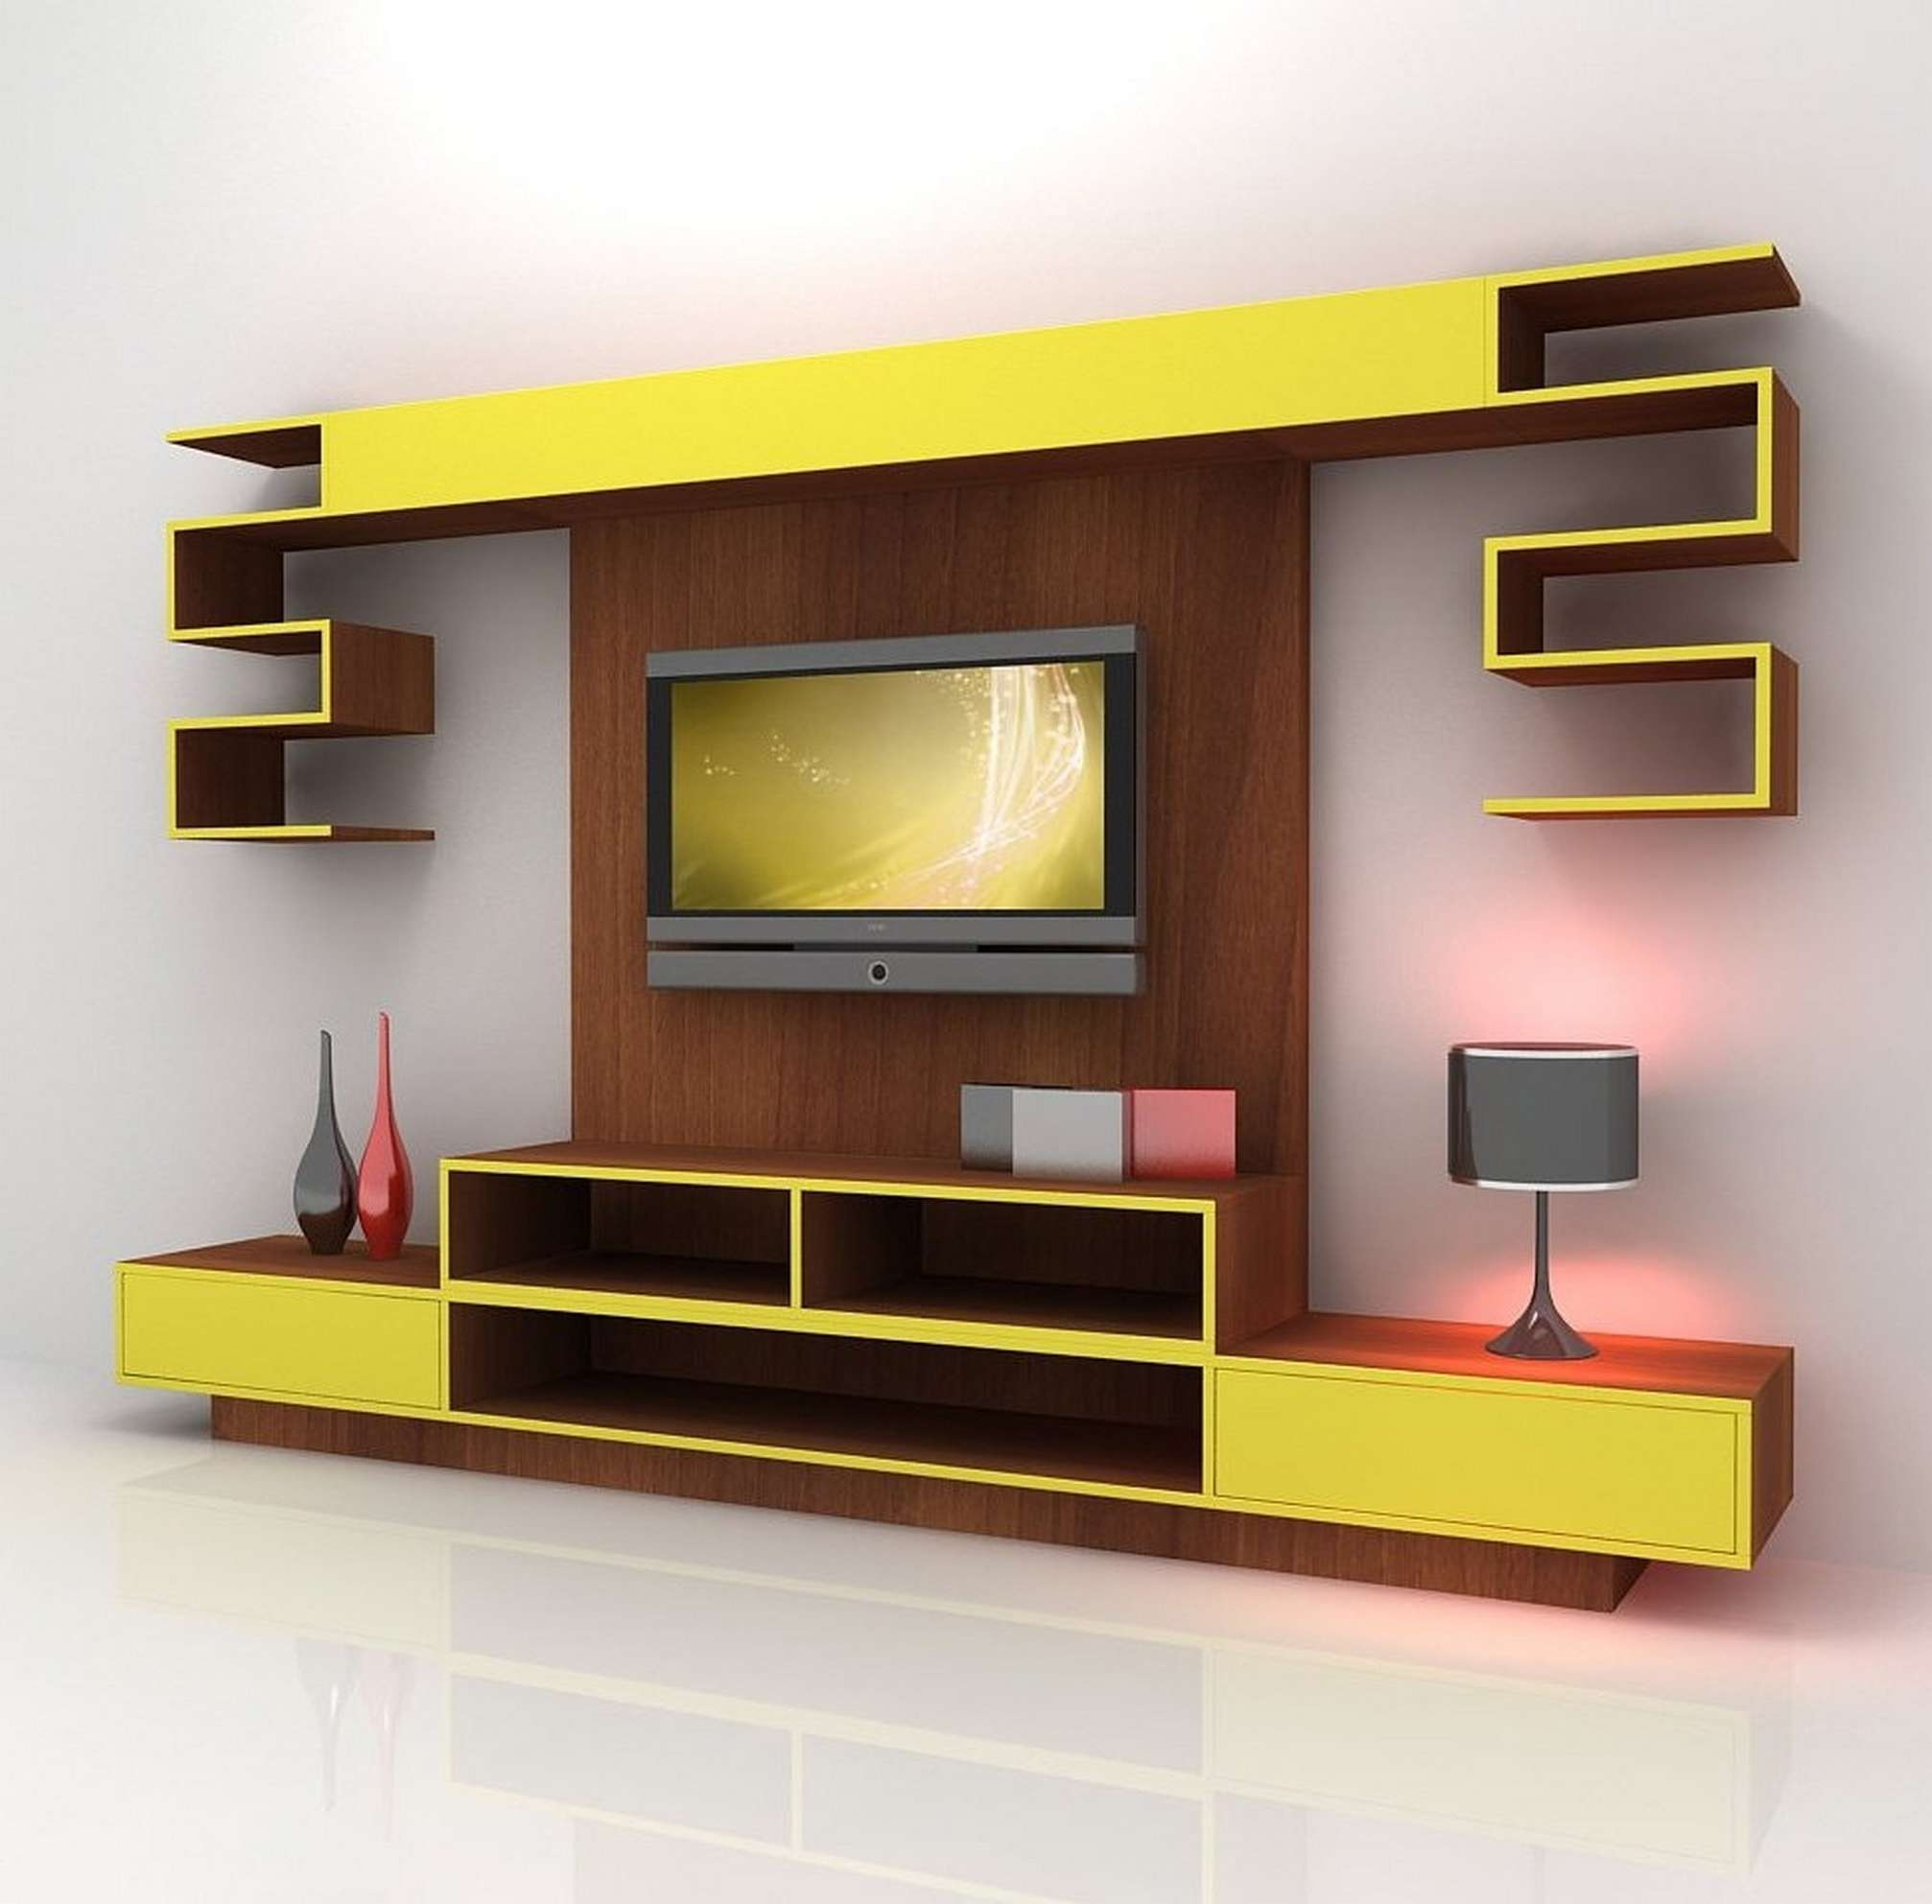 Cabinets For Living Room Designs: 2019 Latest Full Wall Tv Cabinets